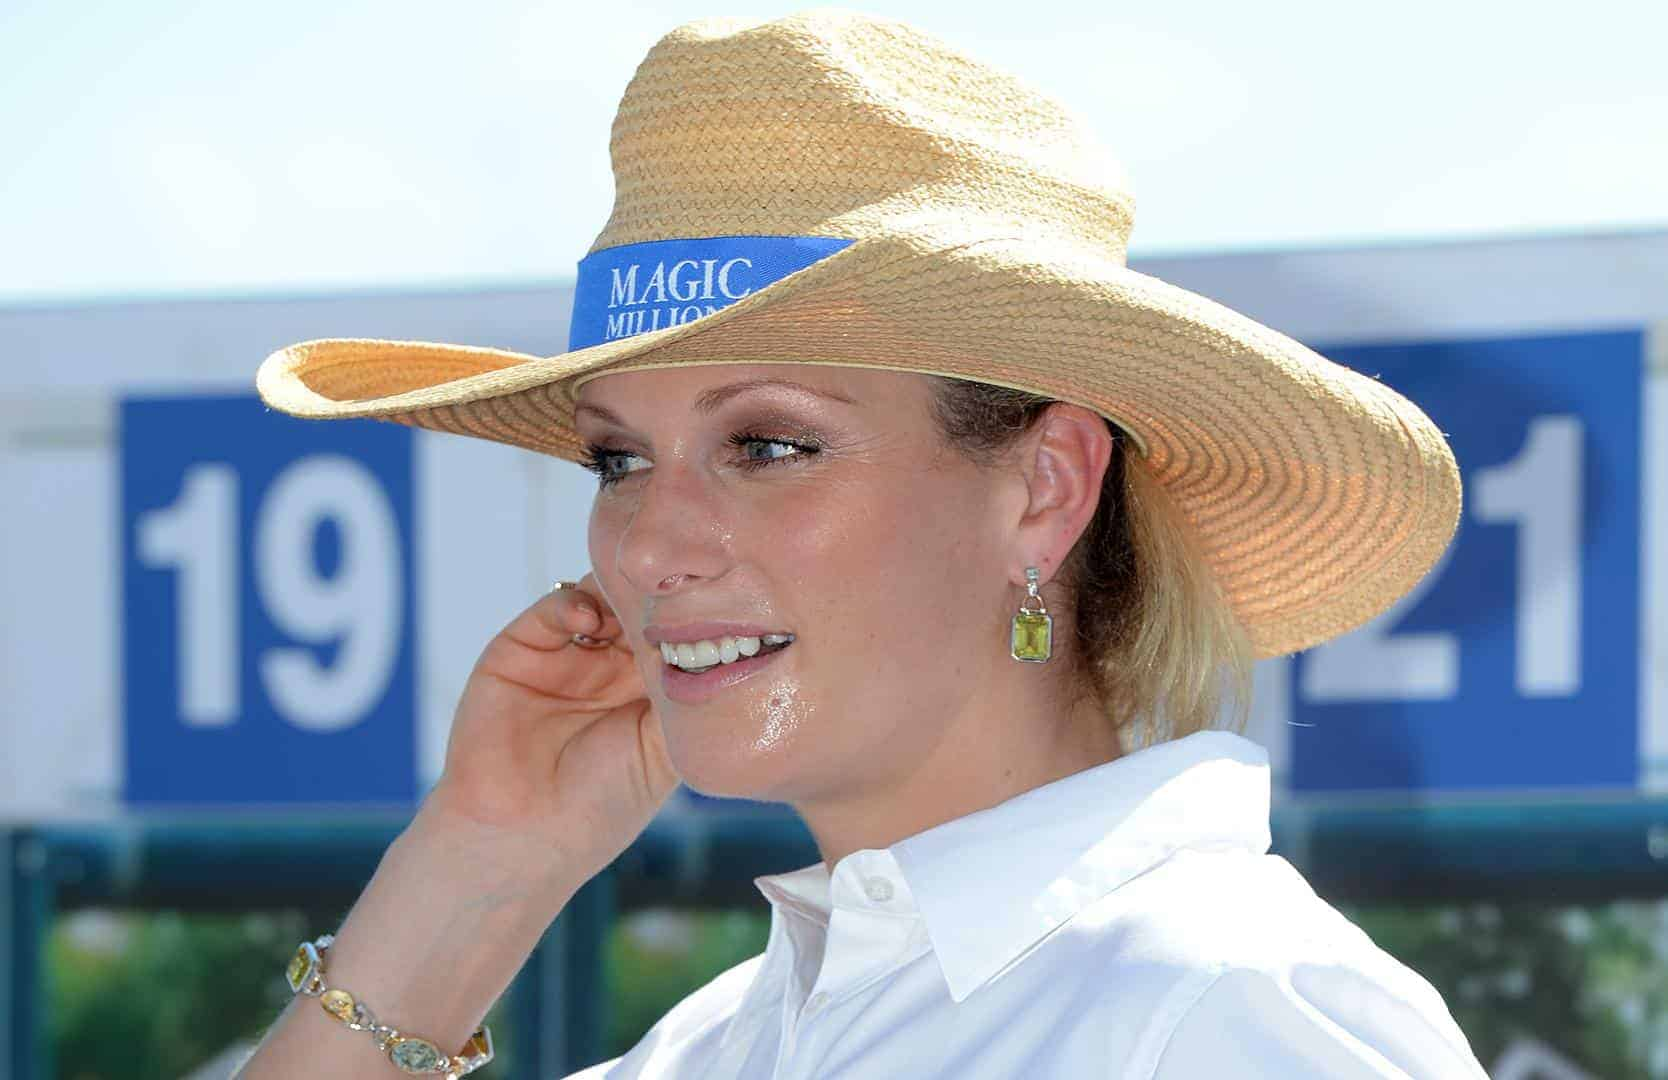 MAGIC MILLIONS BARRIER DRAW